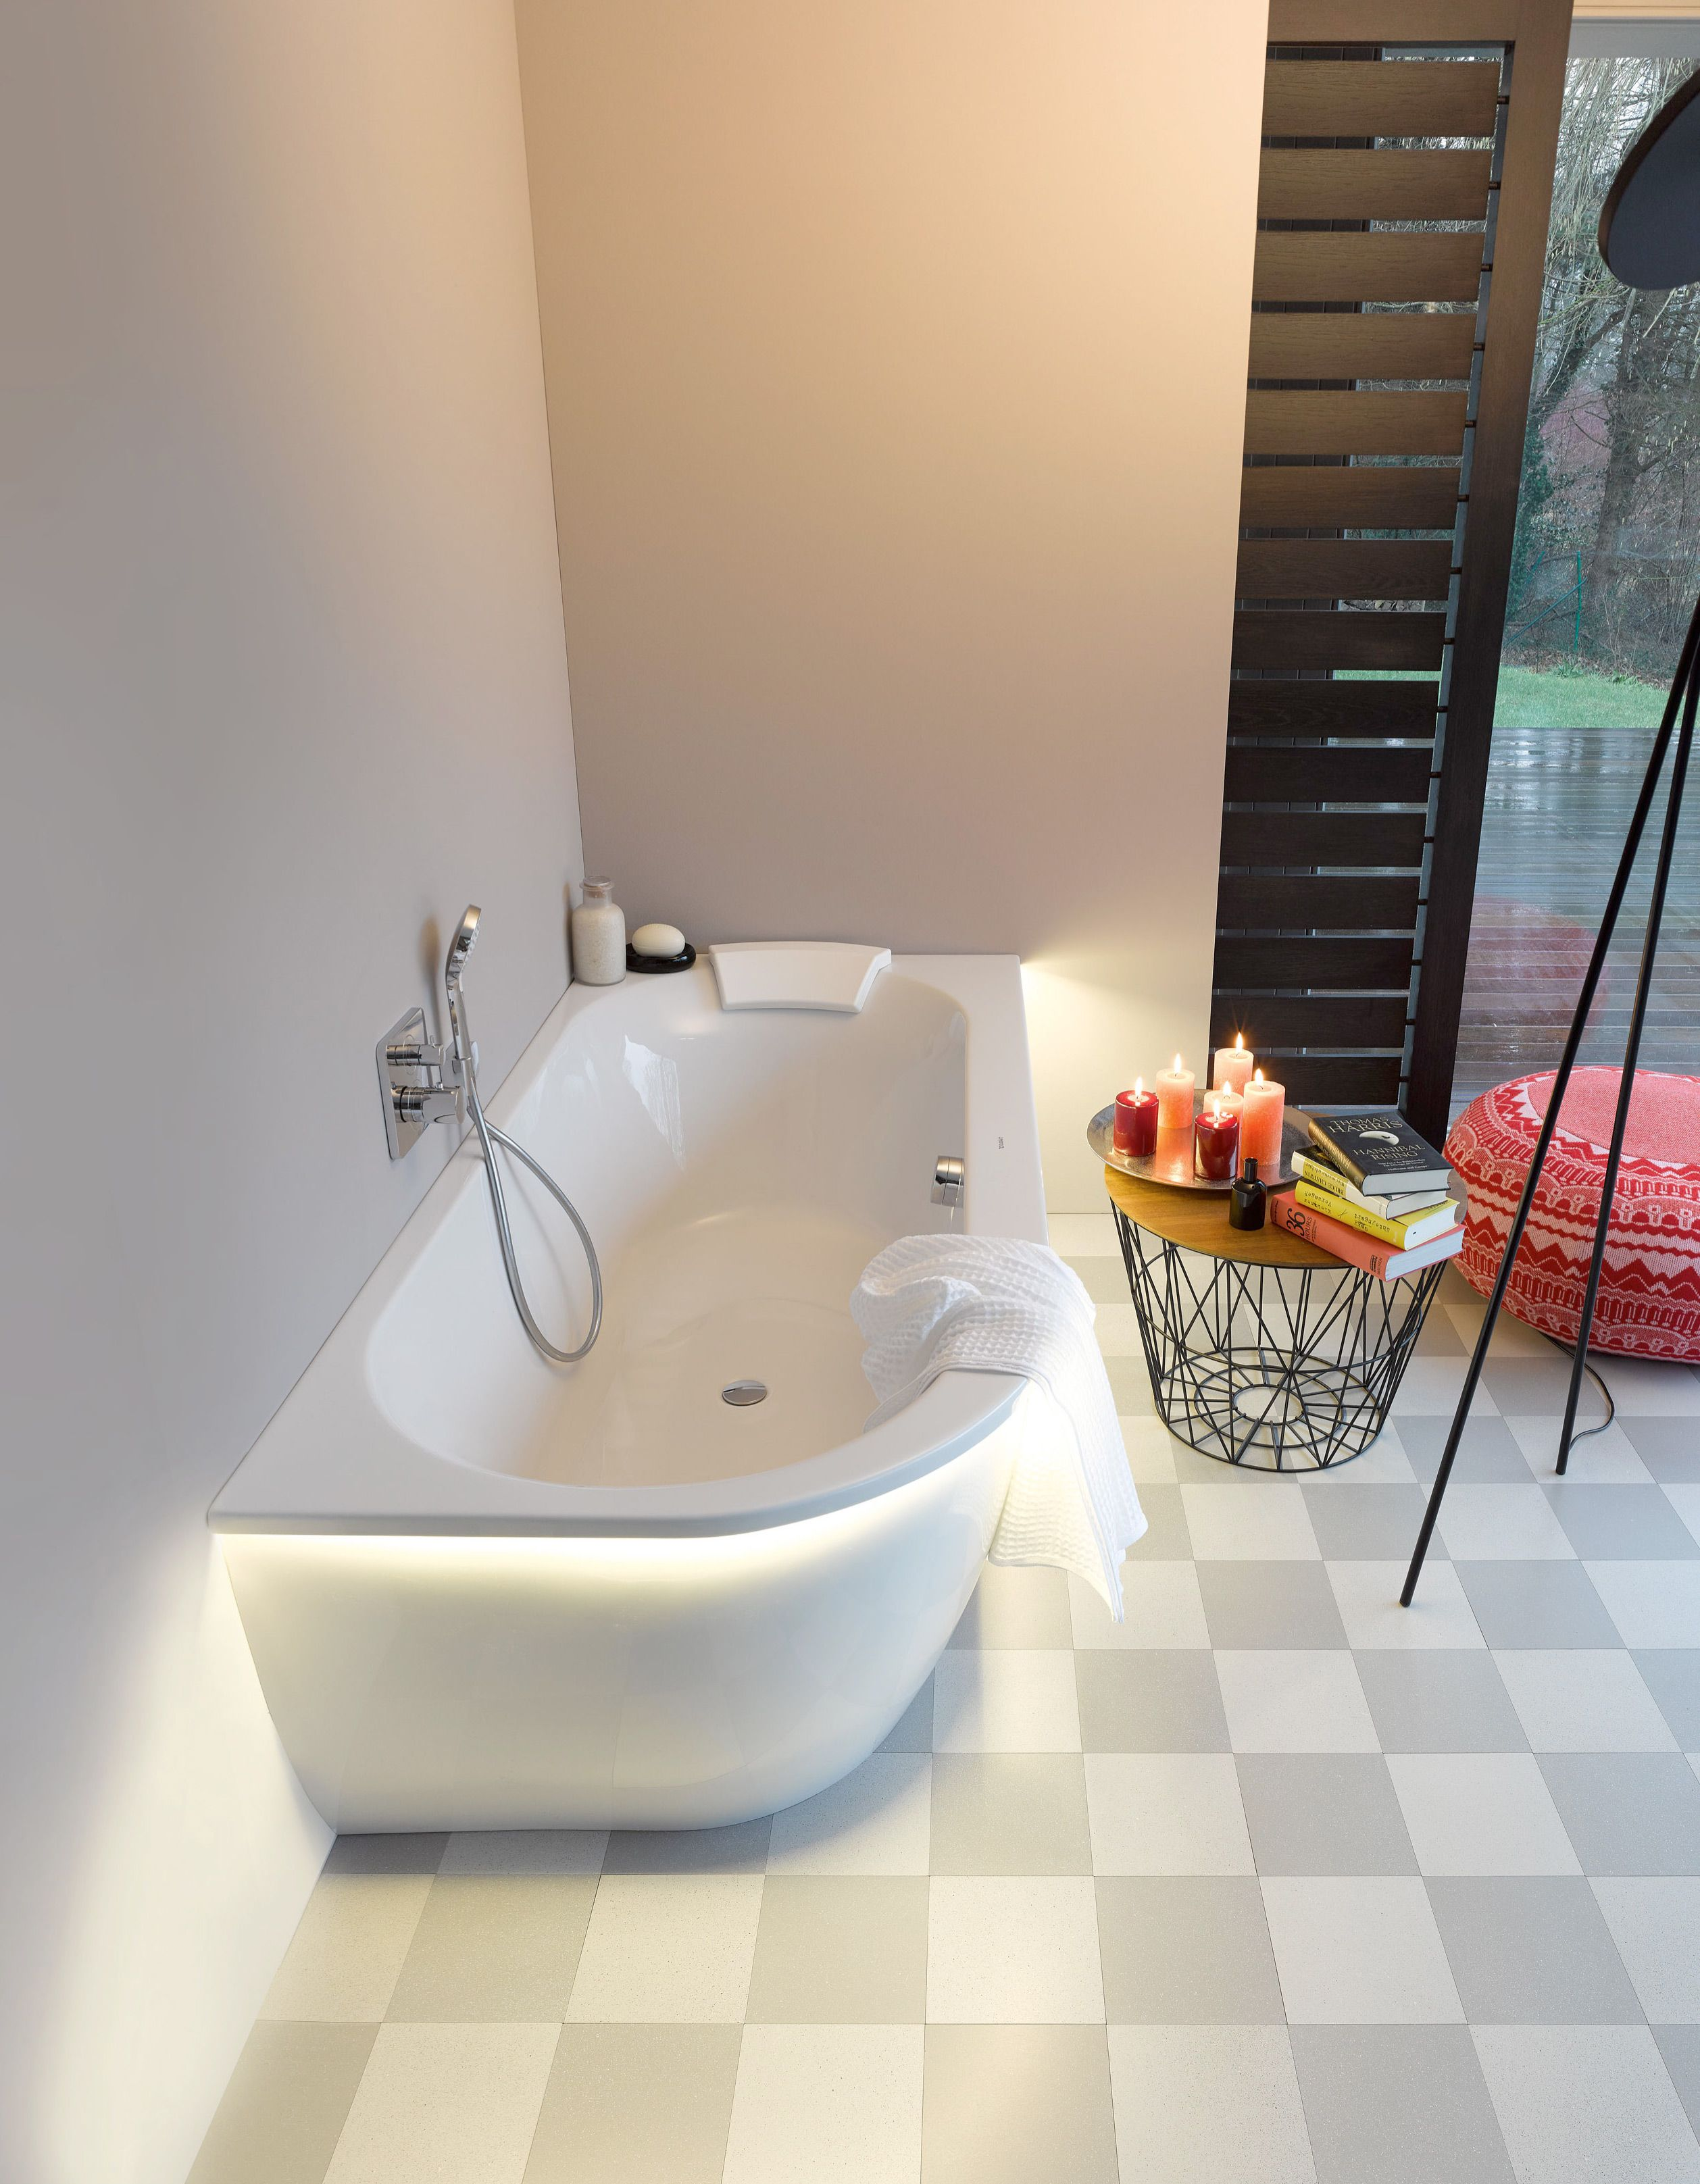 baths b free bathtub from standing tub product cape architonic by cod en duravit